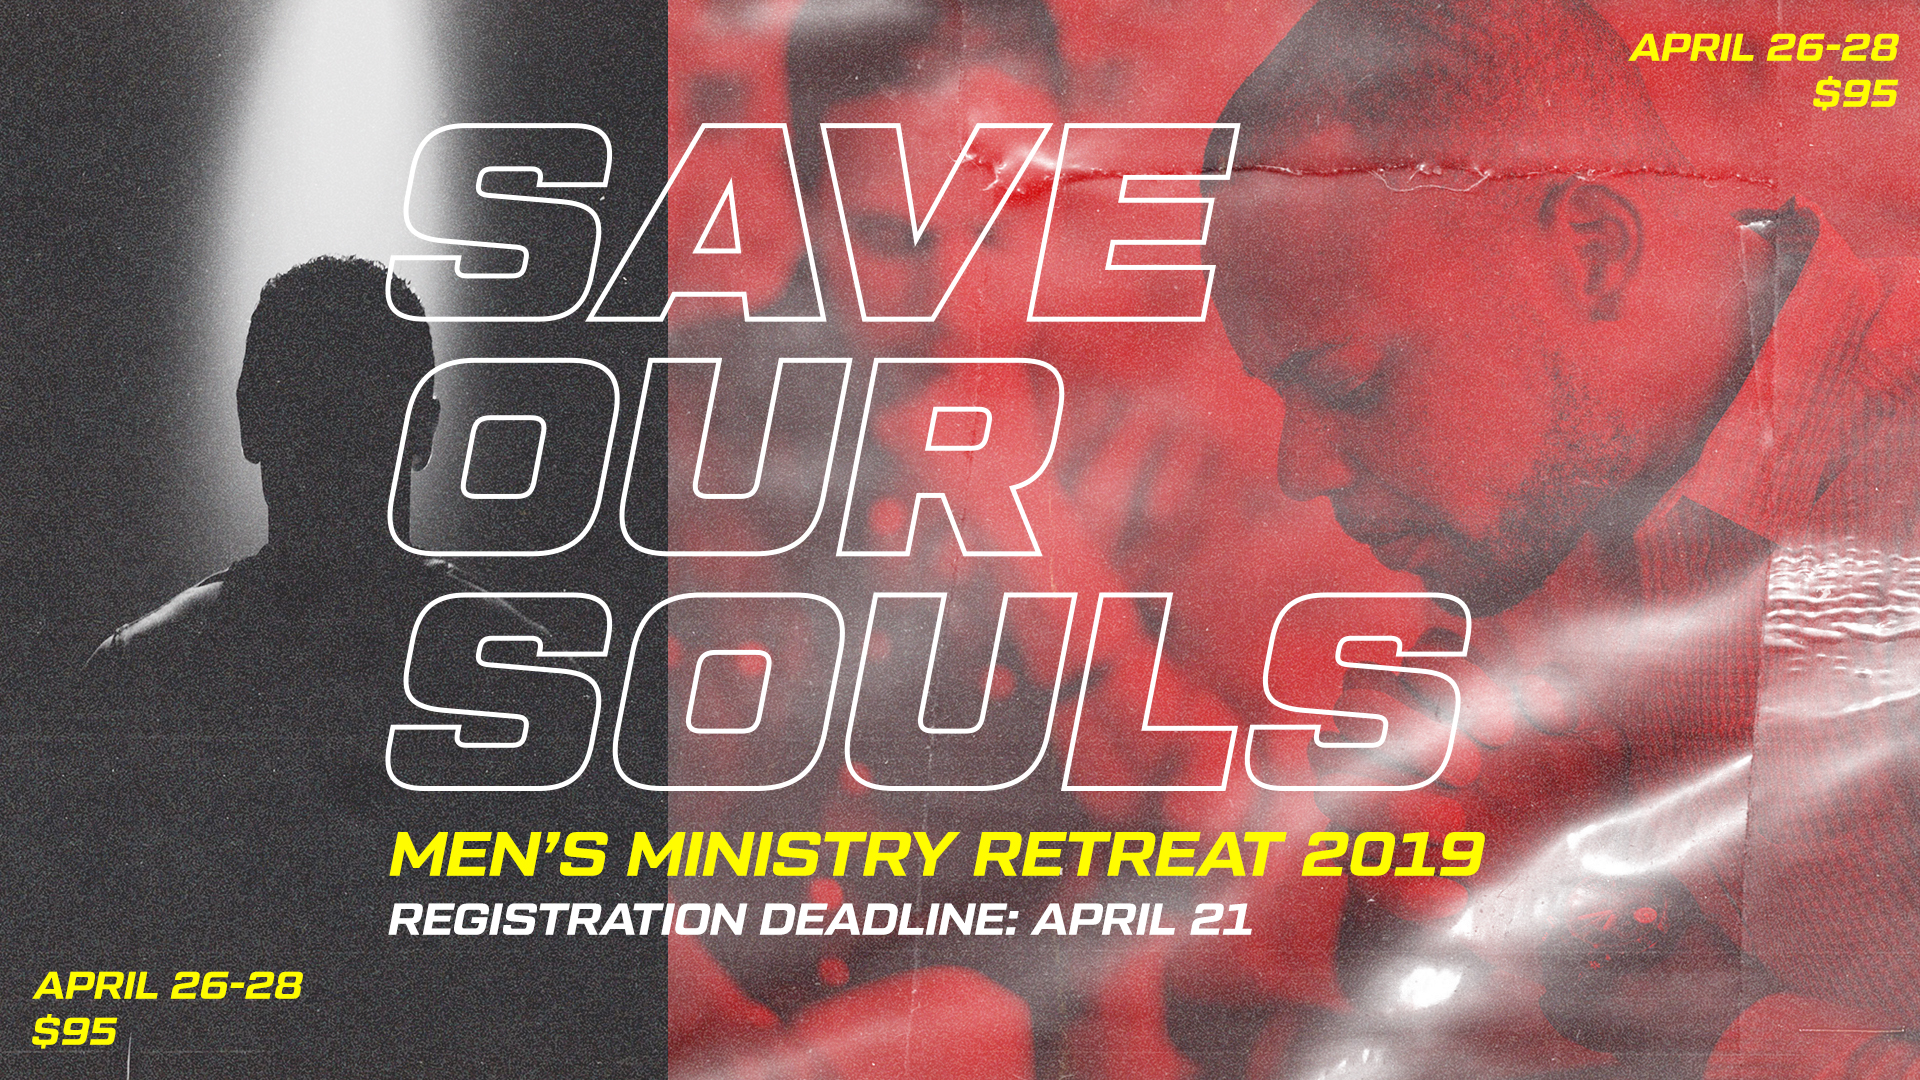 Men's Ministry Retreat.jpg